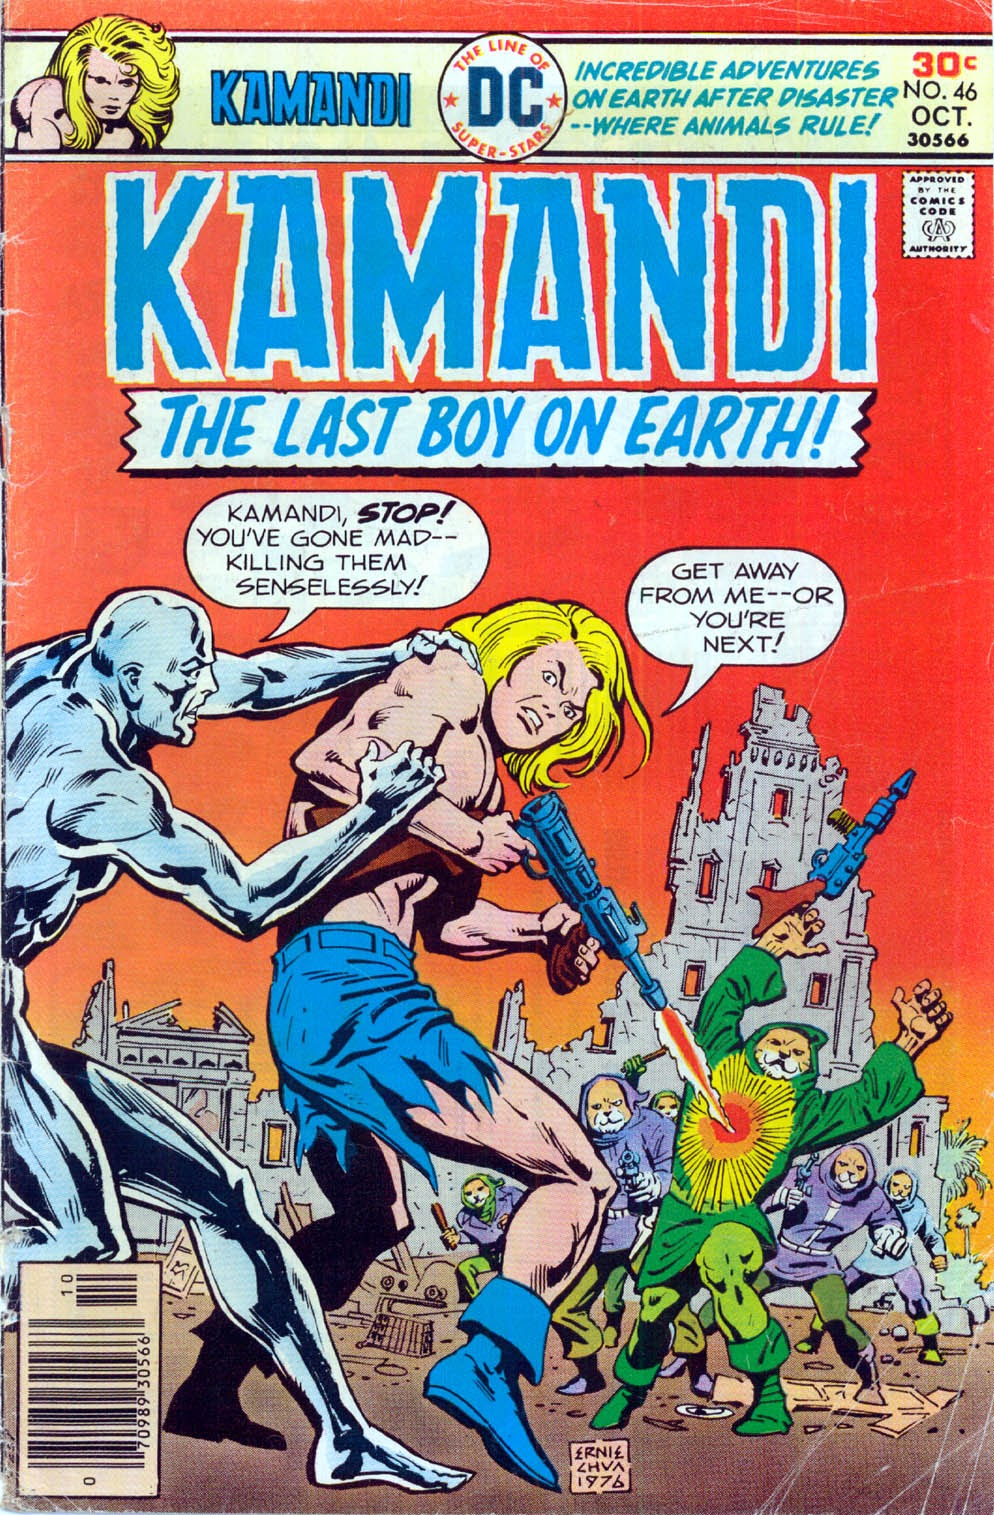 Kamandi, The Last Boy On Earth issue 46 - Page 1